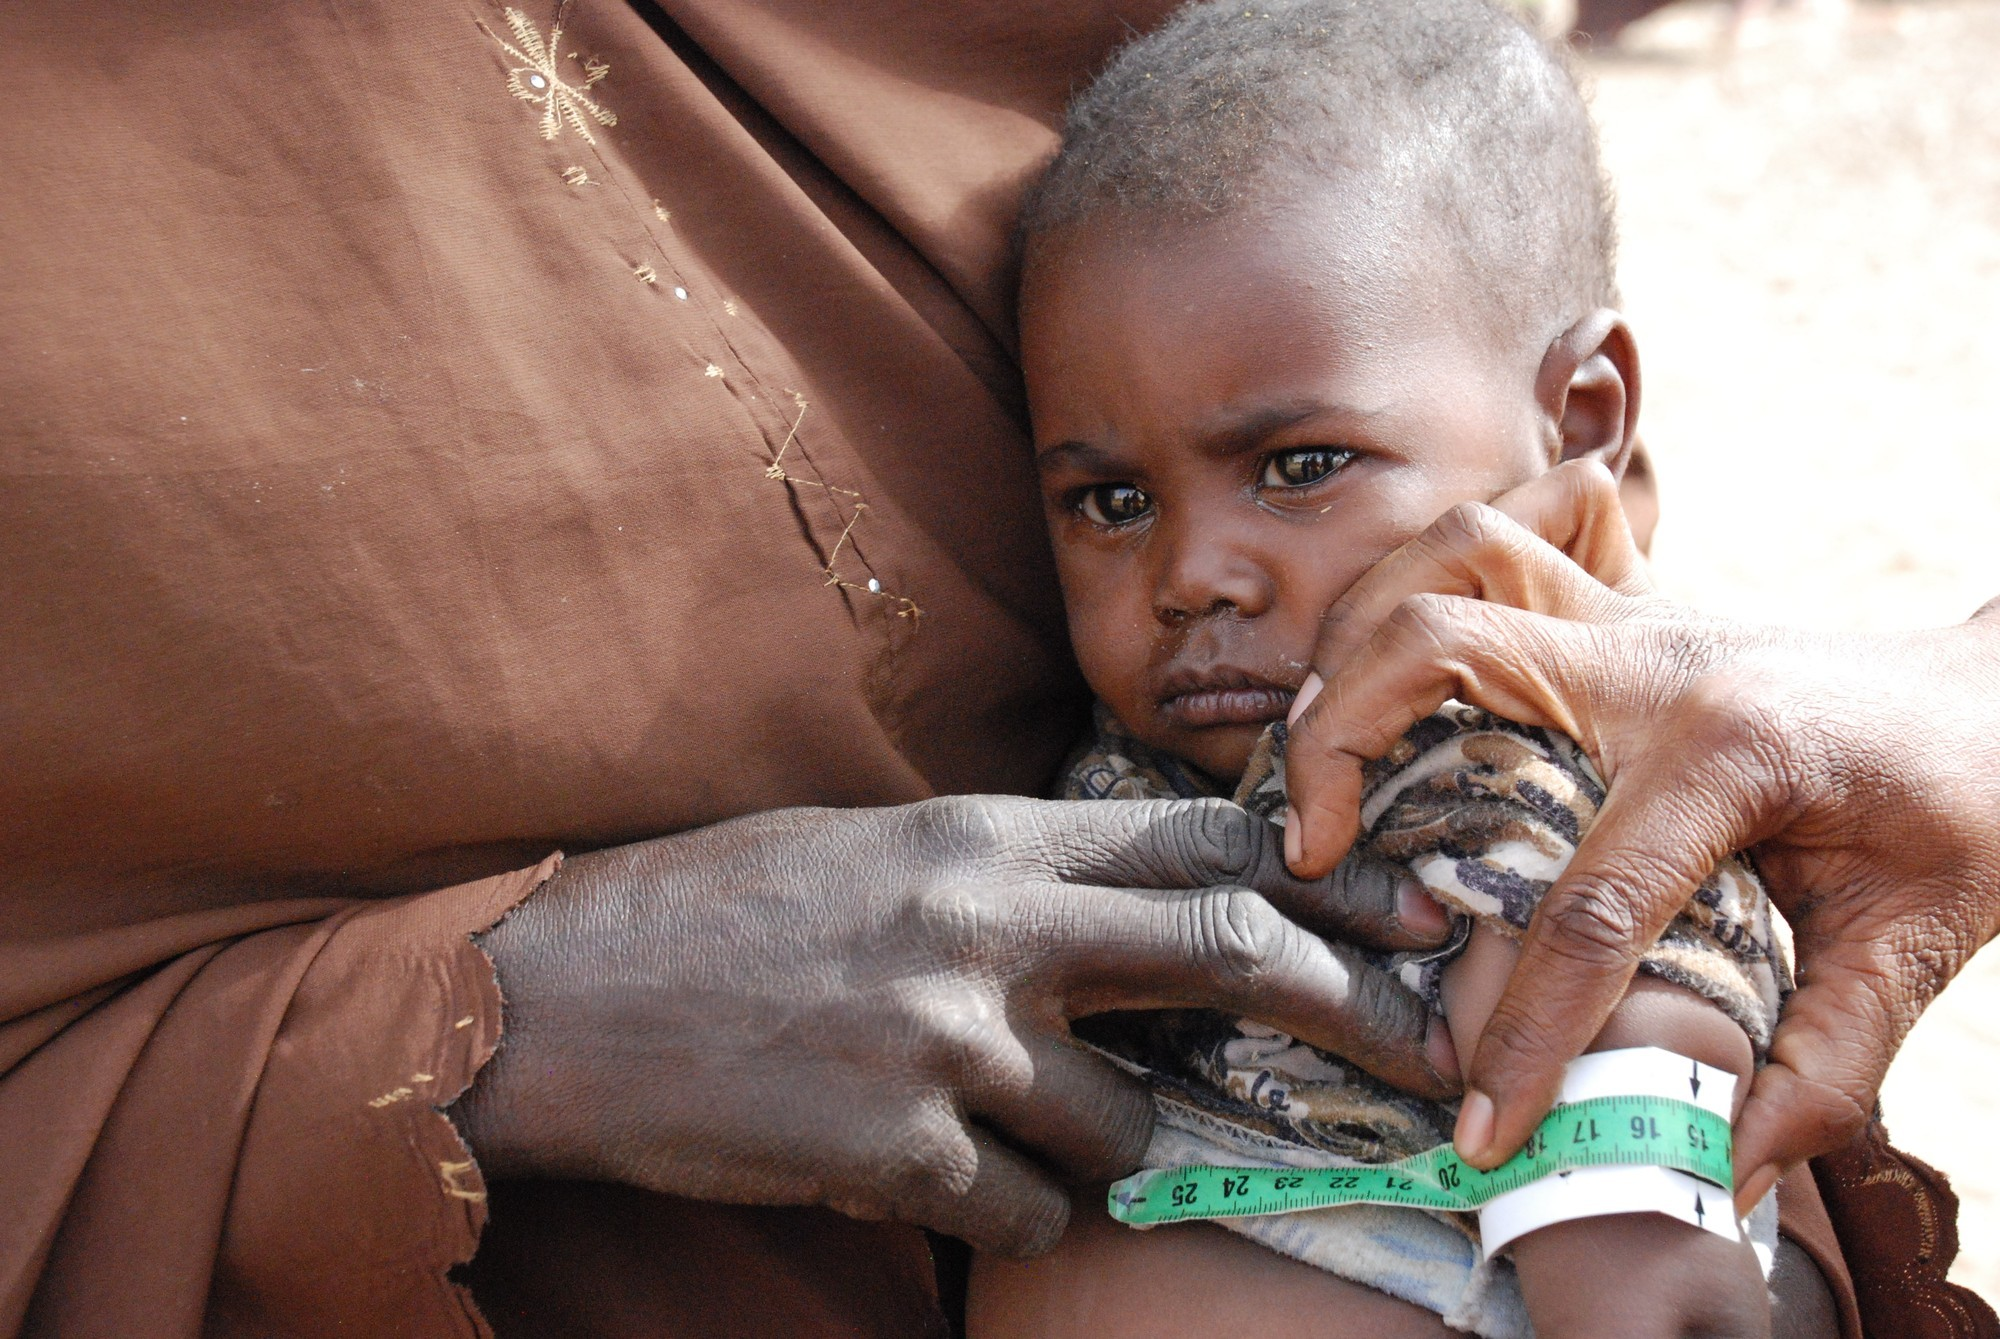 Baby being measured to check against malnutrition